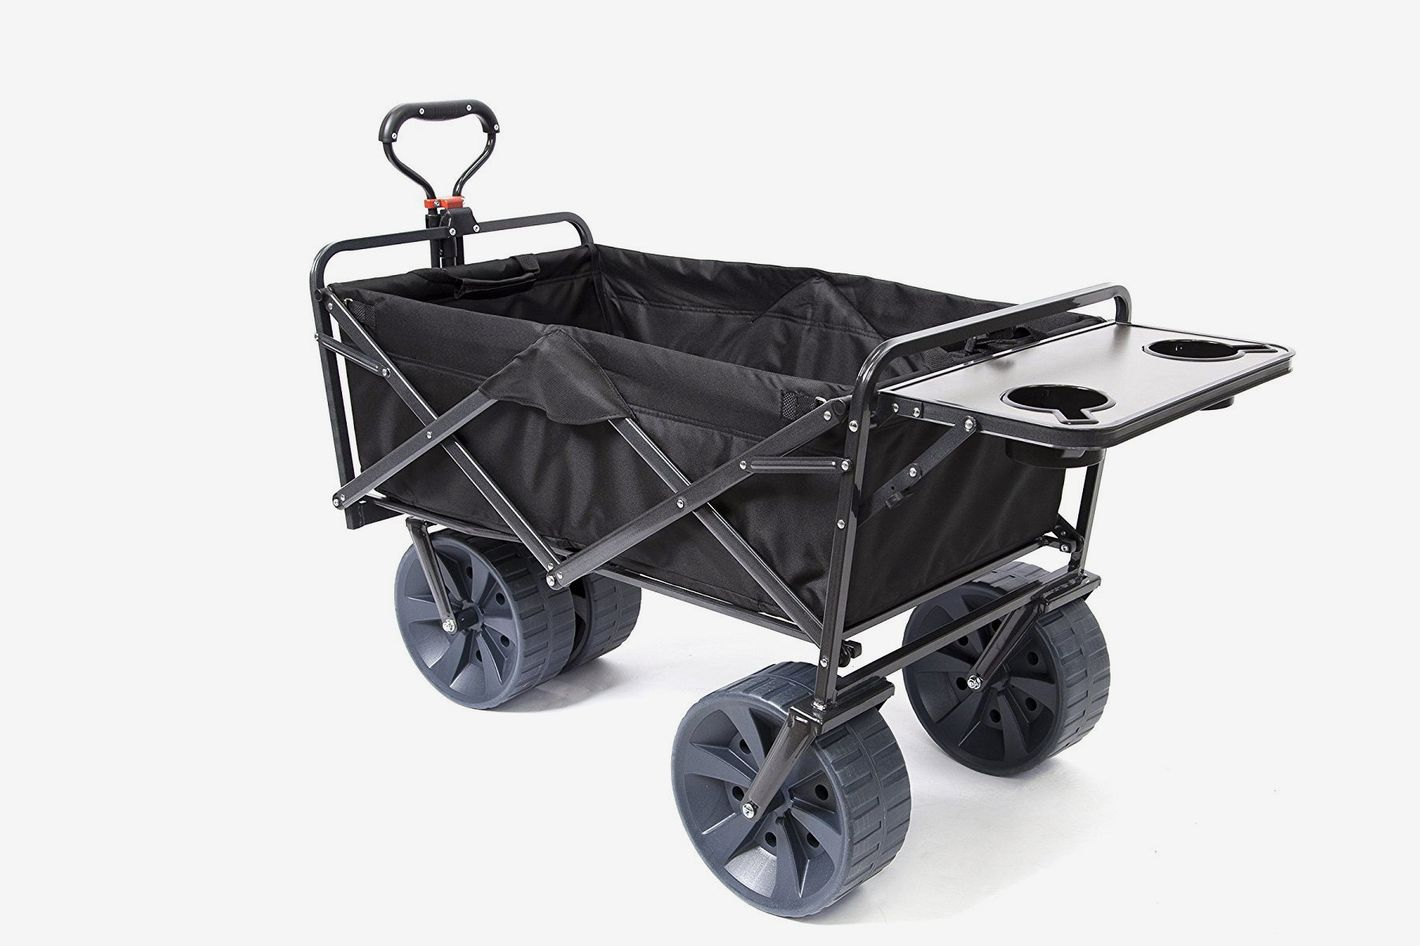 Mac Sports Heavy Duty Collapsible Folding All Terrain Utility Wagon Beach Cart With Table